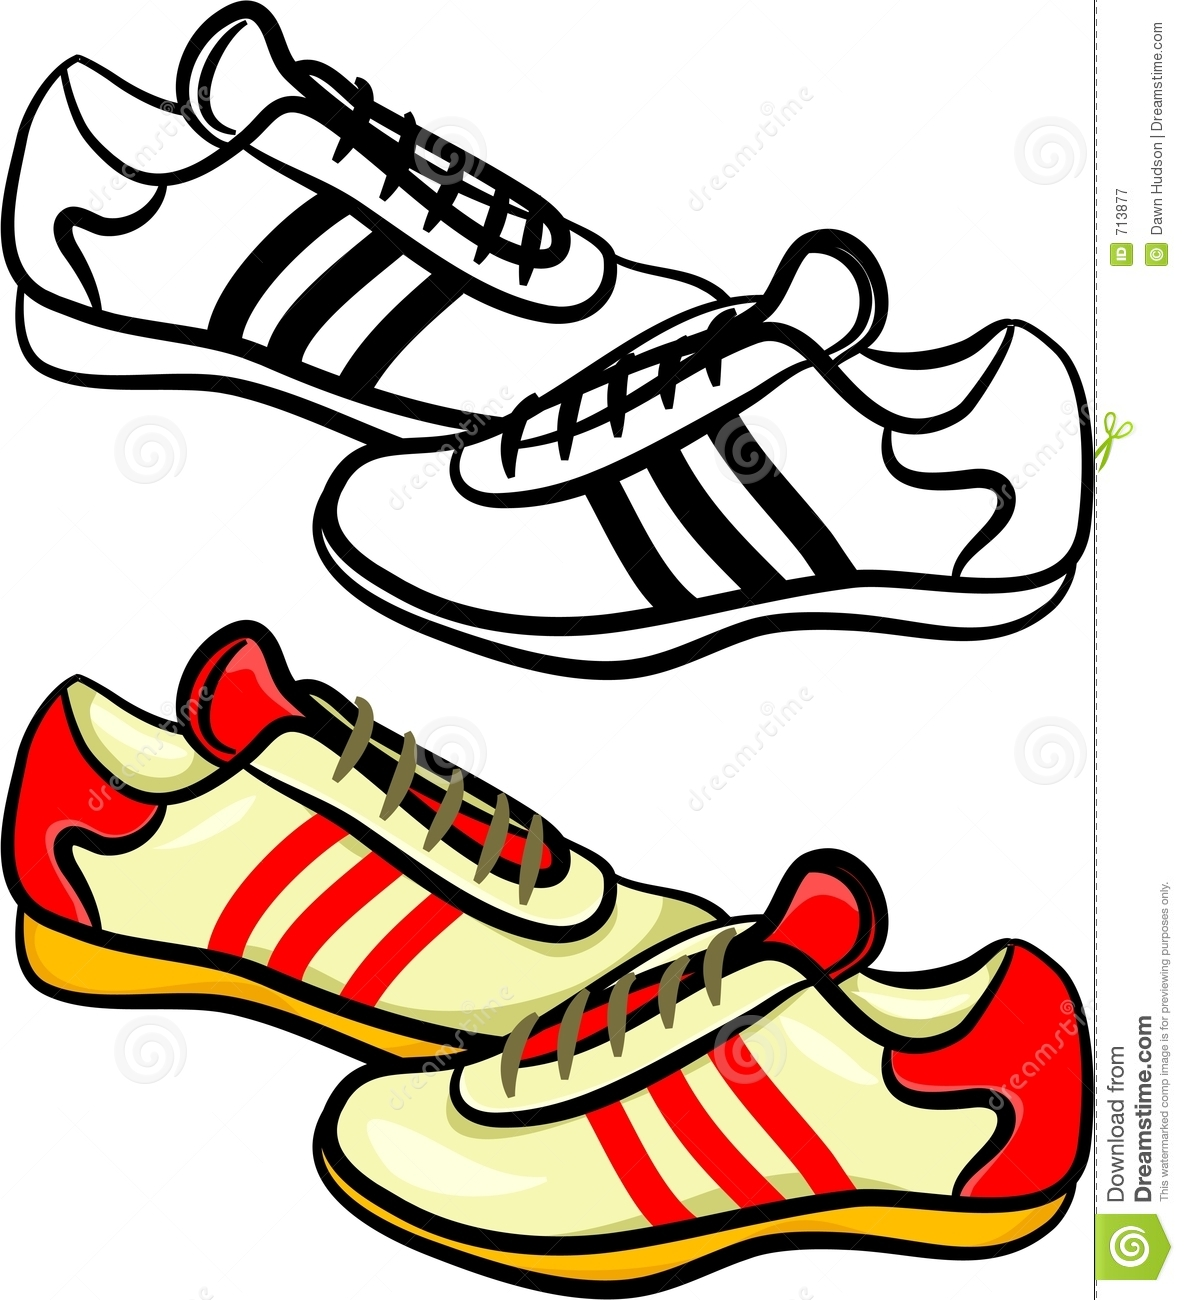 Trainers clipart image black and white stock Mens trainers | Clipart Panda - Free Clipart Images image black and white stock